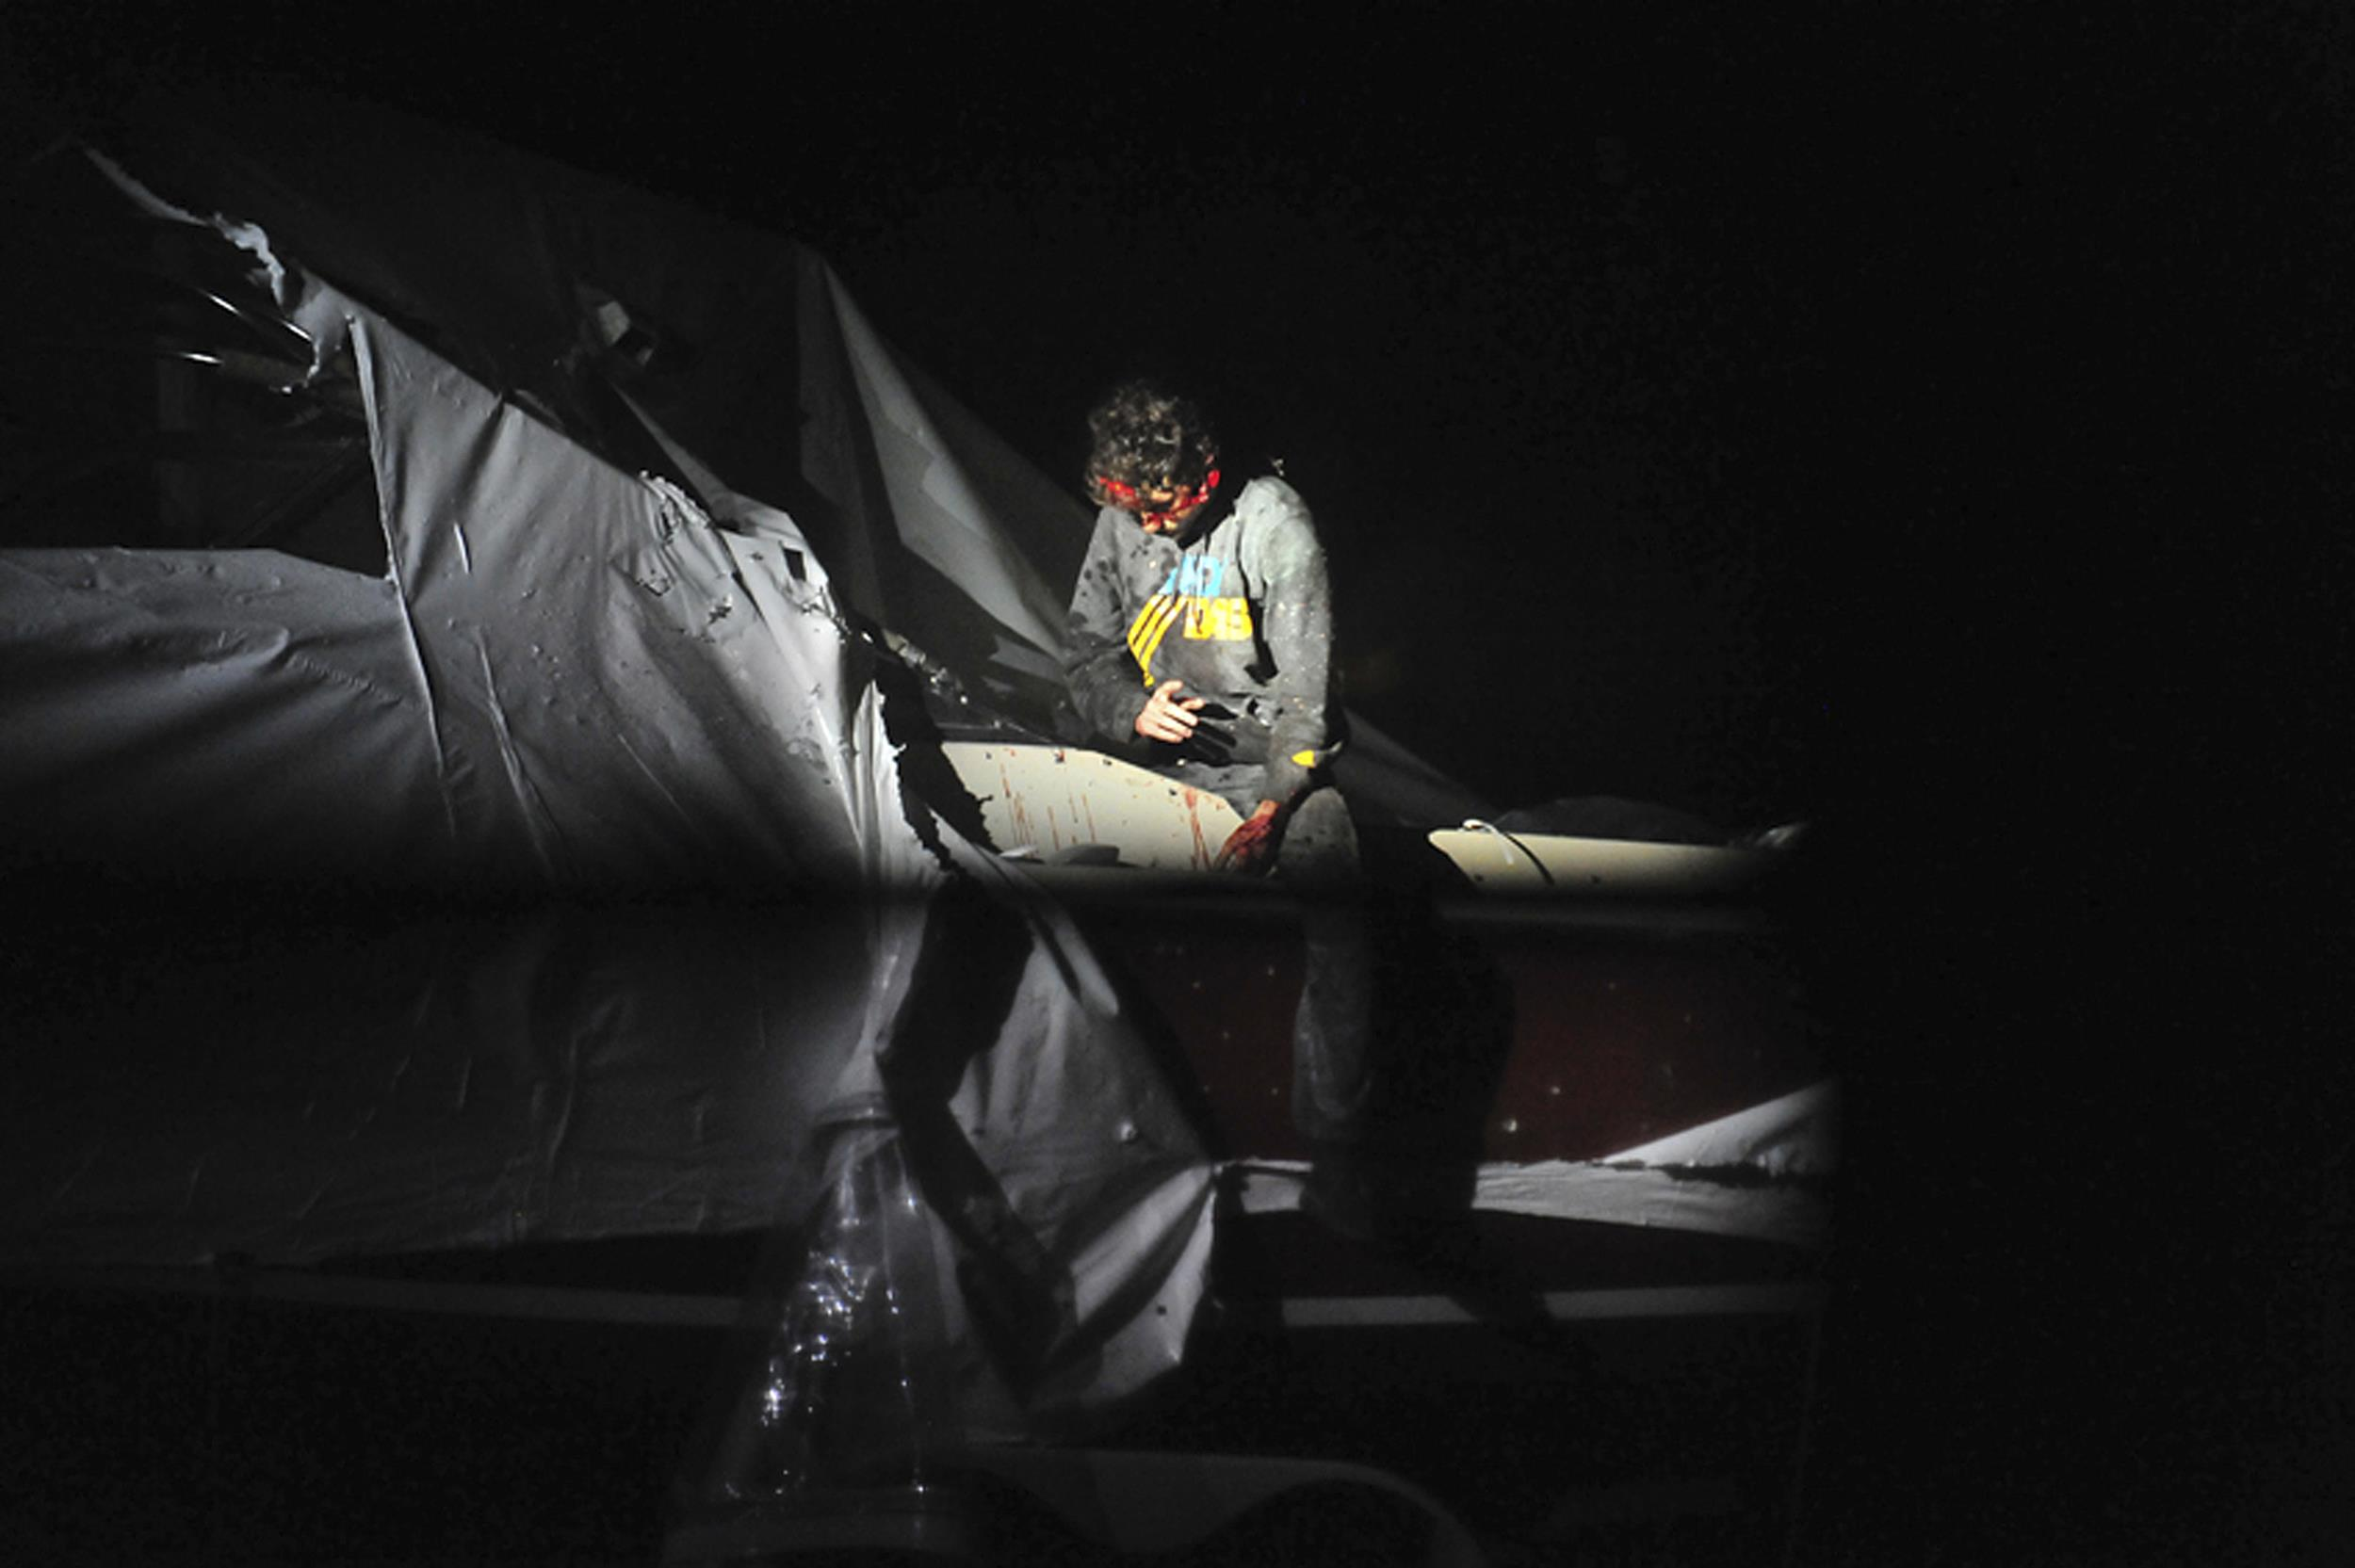 Image: Dzhokhar Tsarnaev is apprehended after hiding in a boat